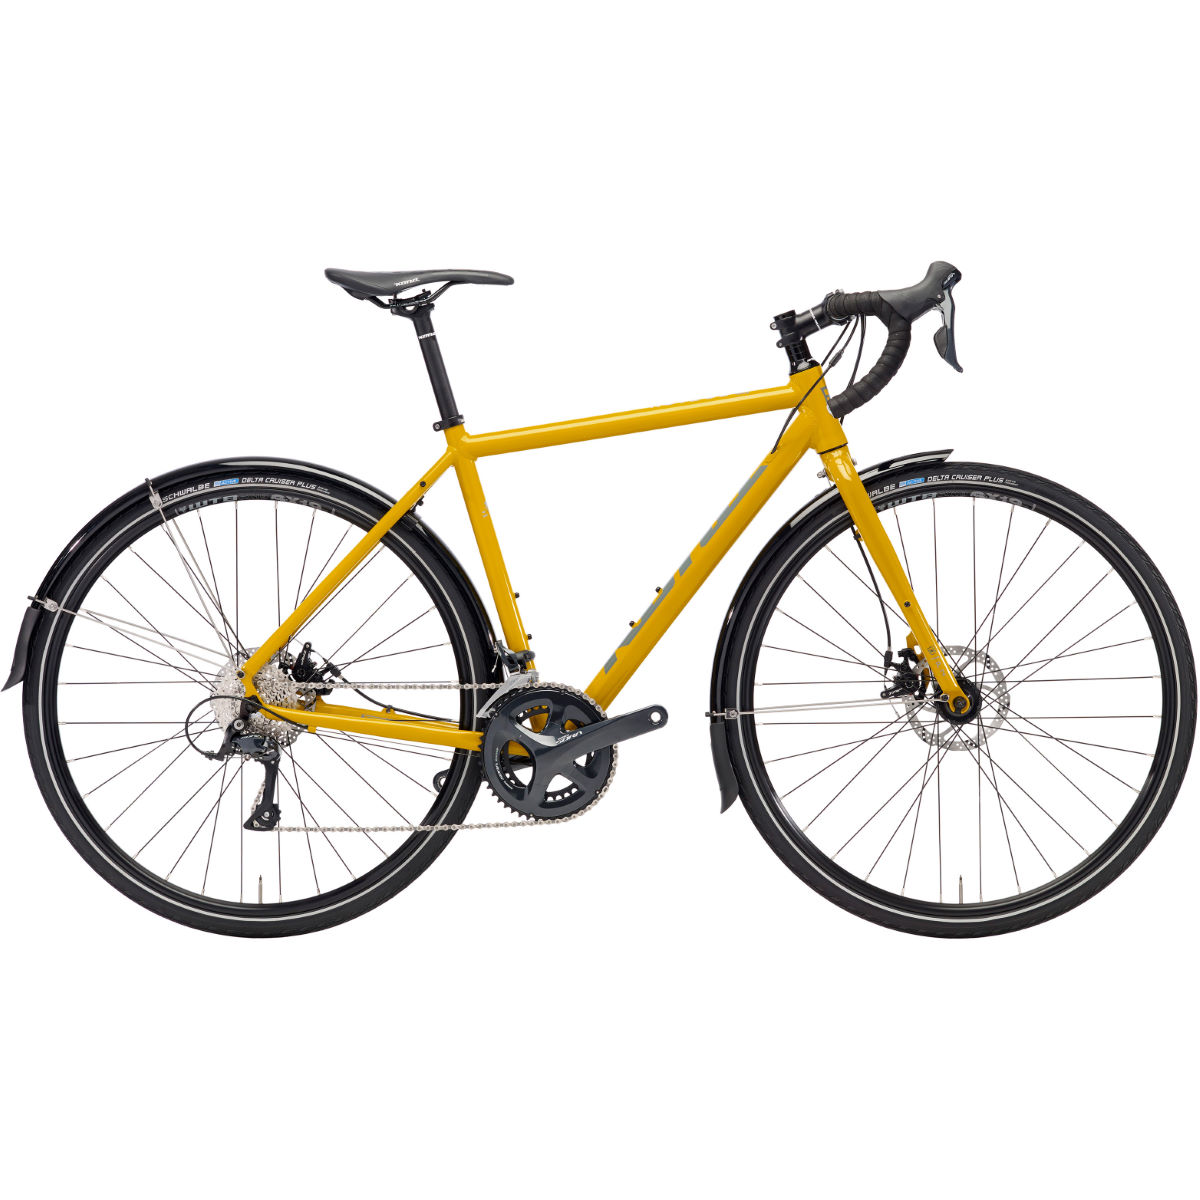 Kona Rove DL (2018) Road Bike